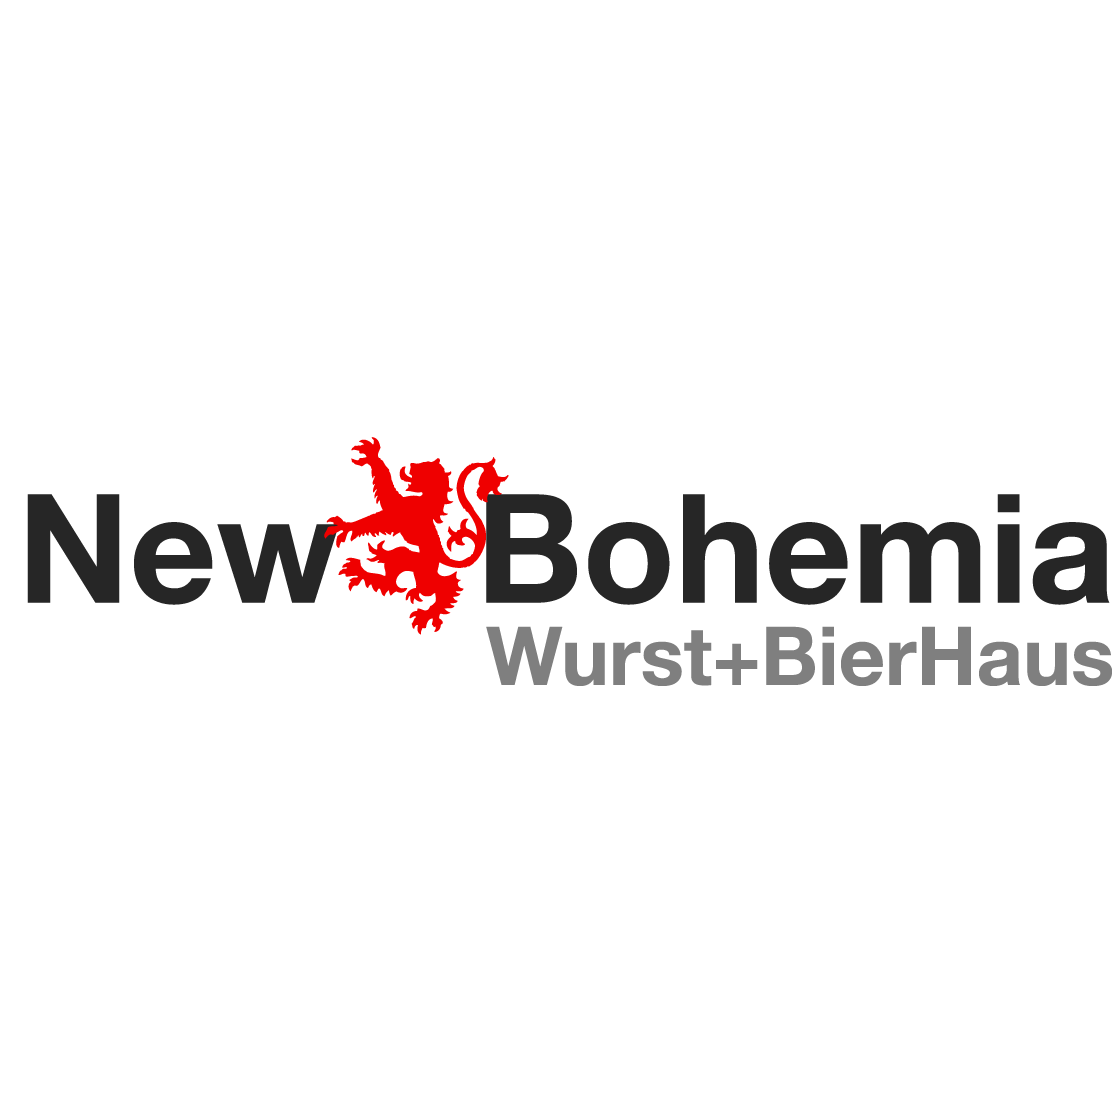 New Bohemia - Northeast